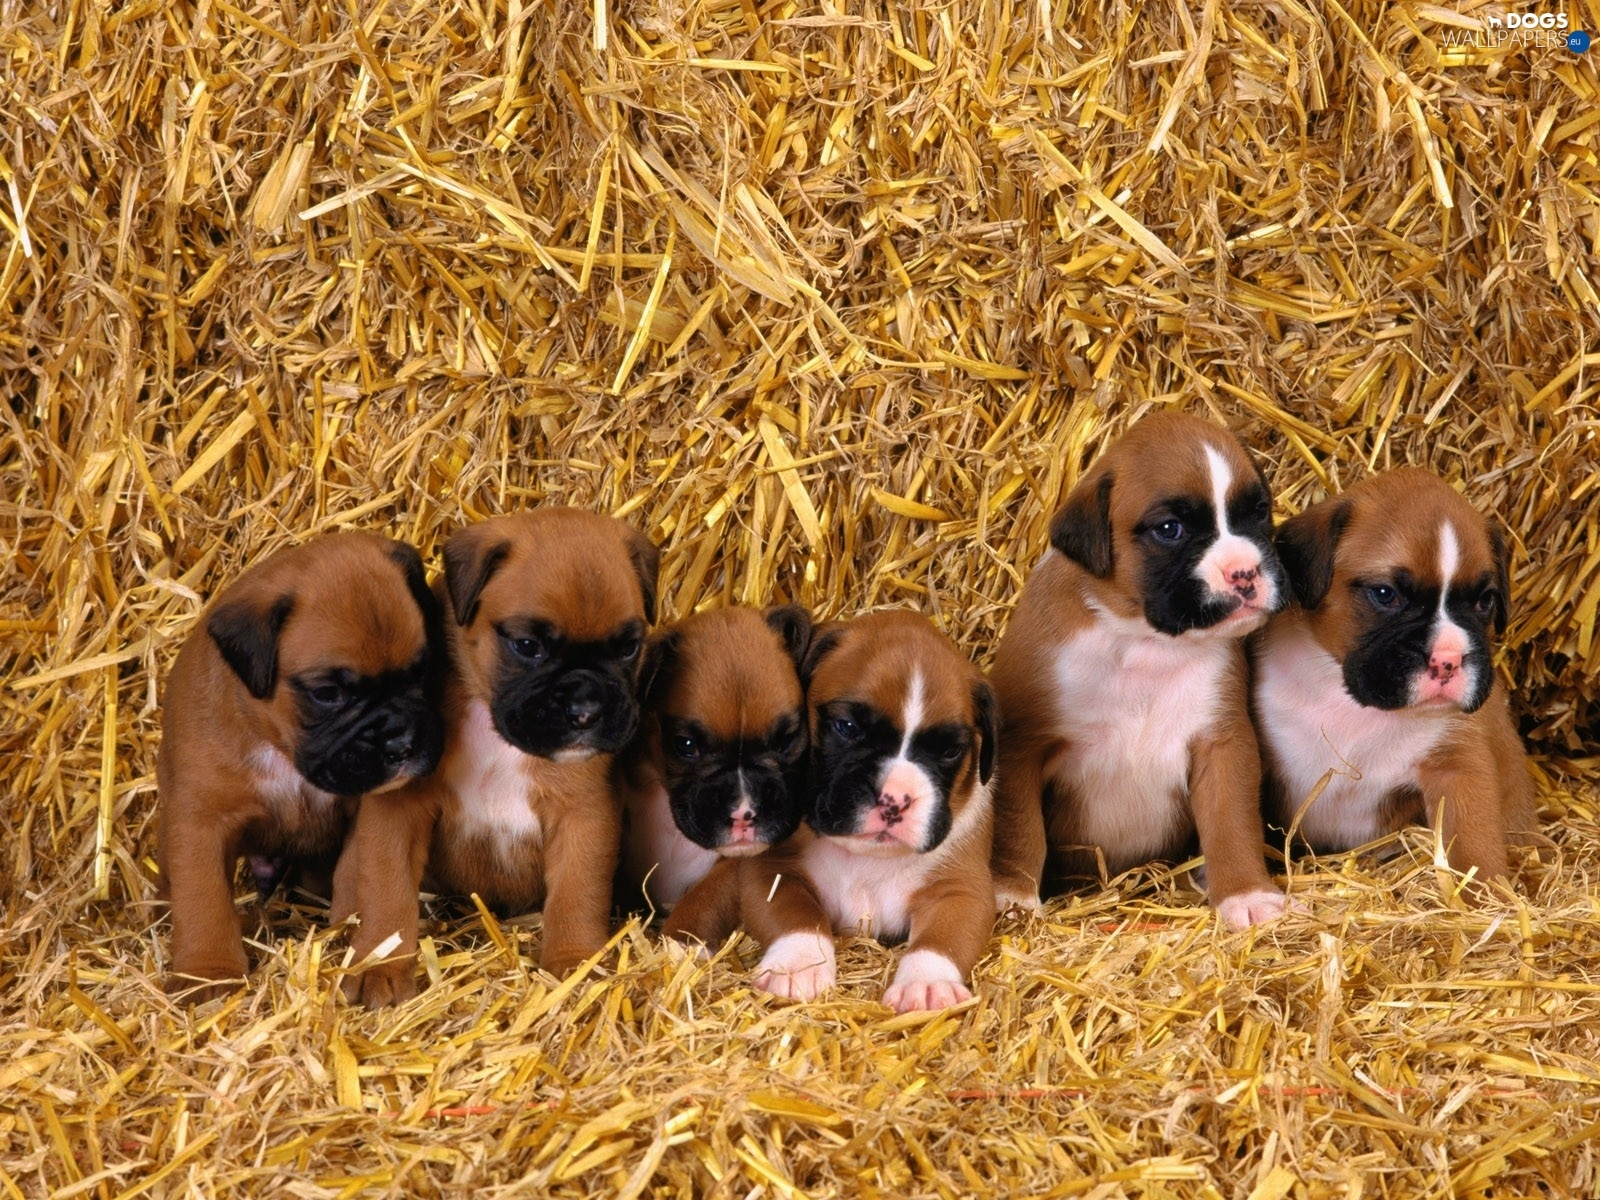 straw, boxers, young, puppies